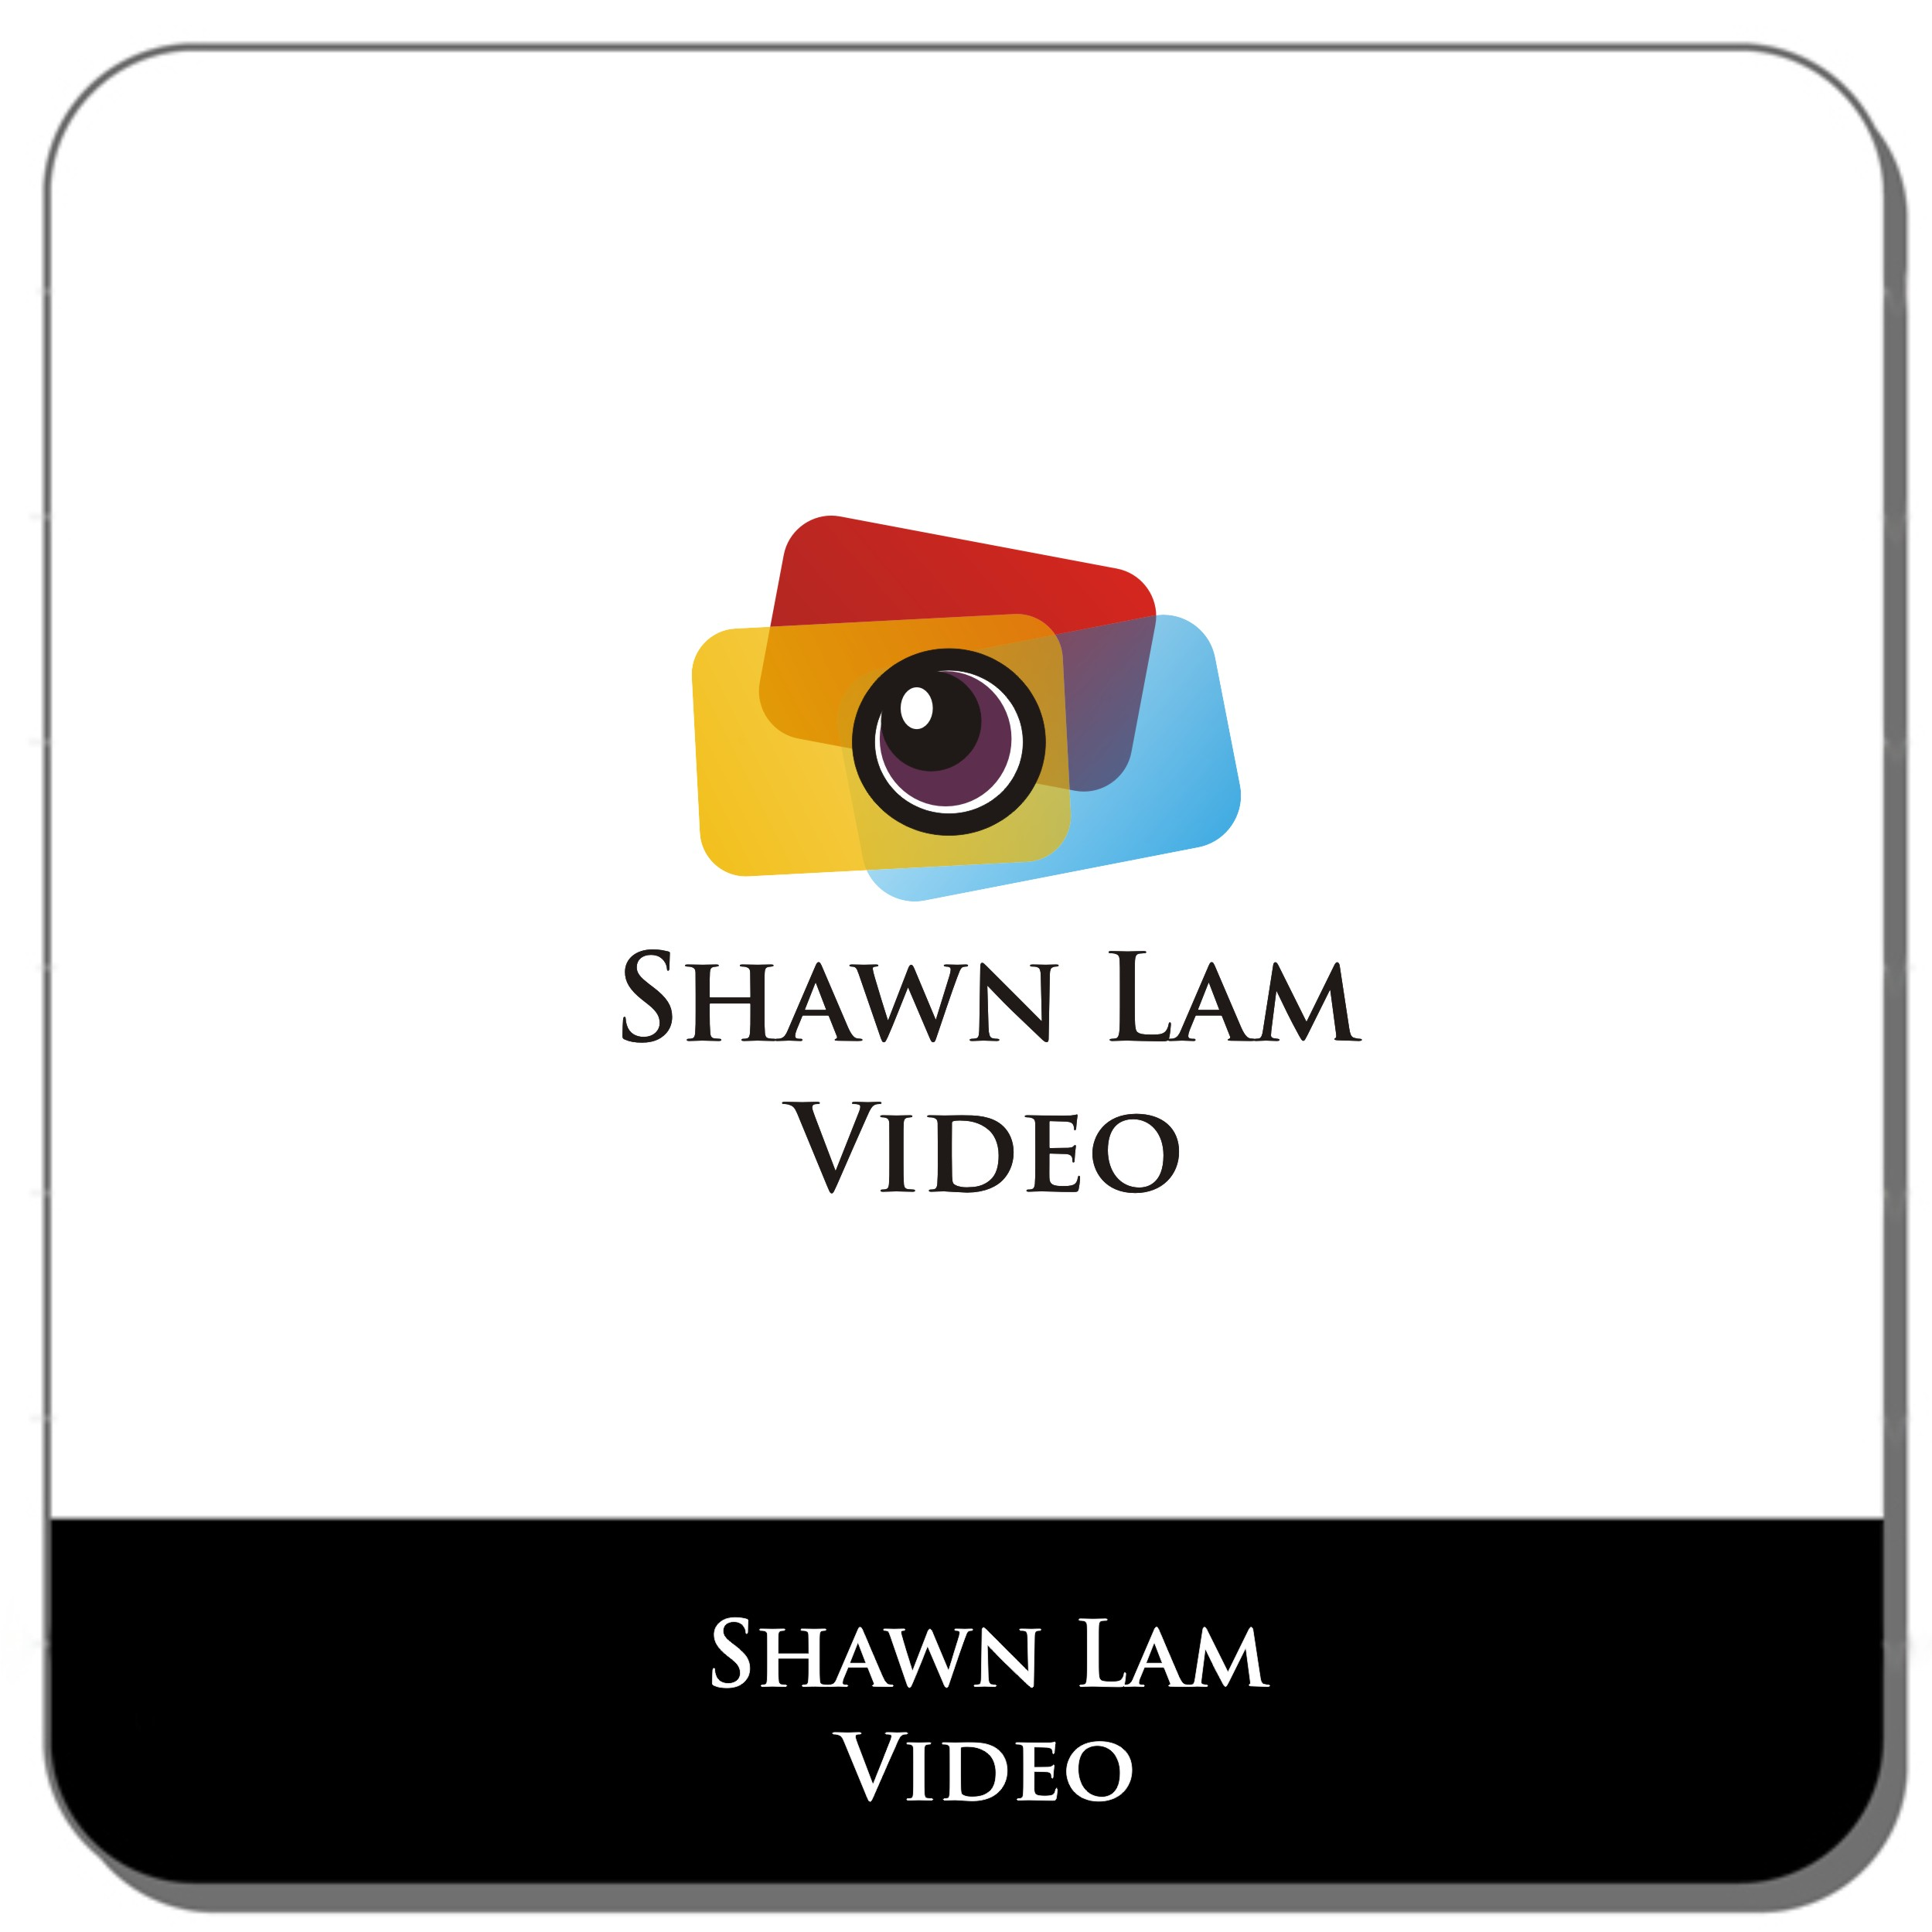 Logo Design For Shawn Lam Video By Mozters™ Designs Design #26299